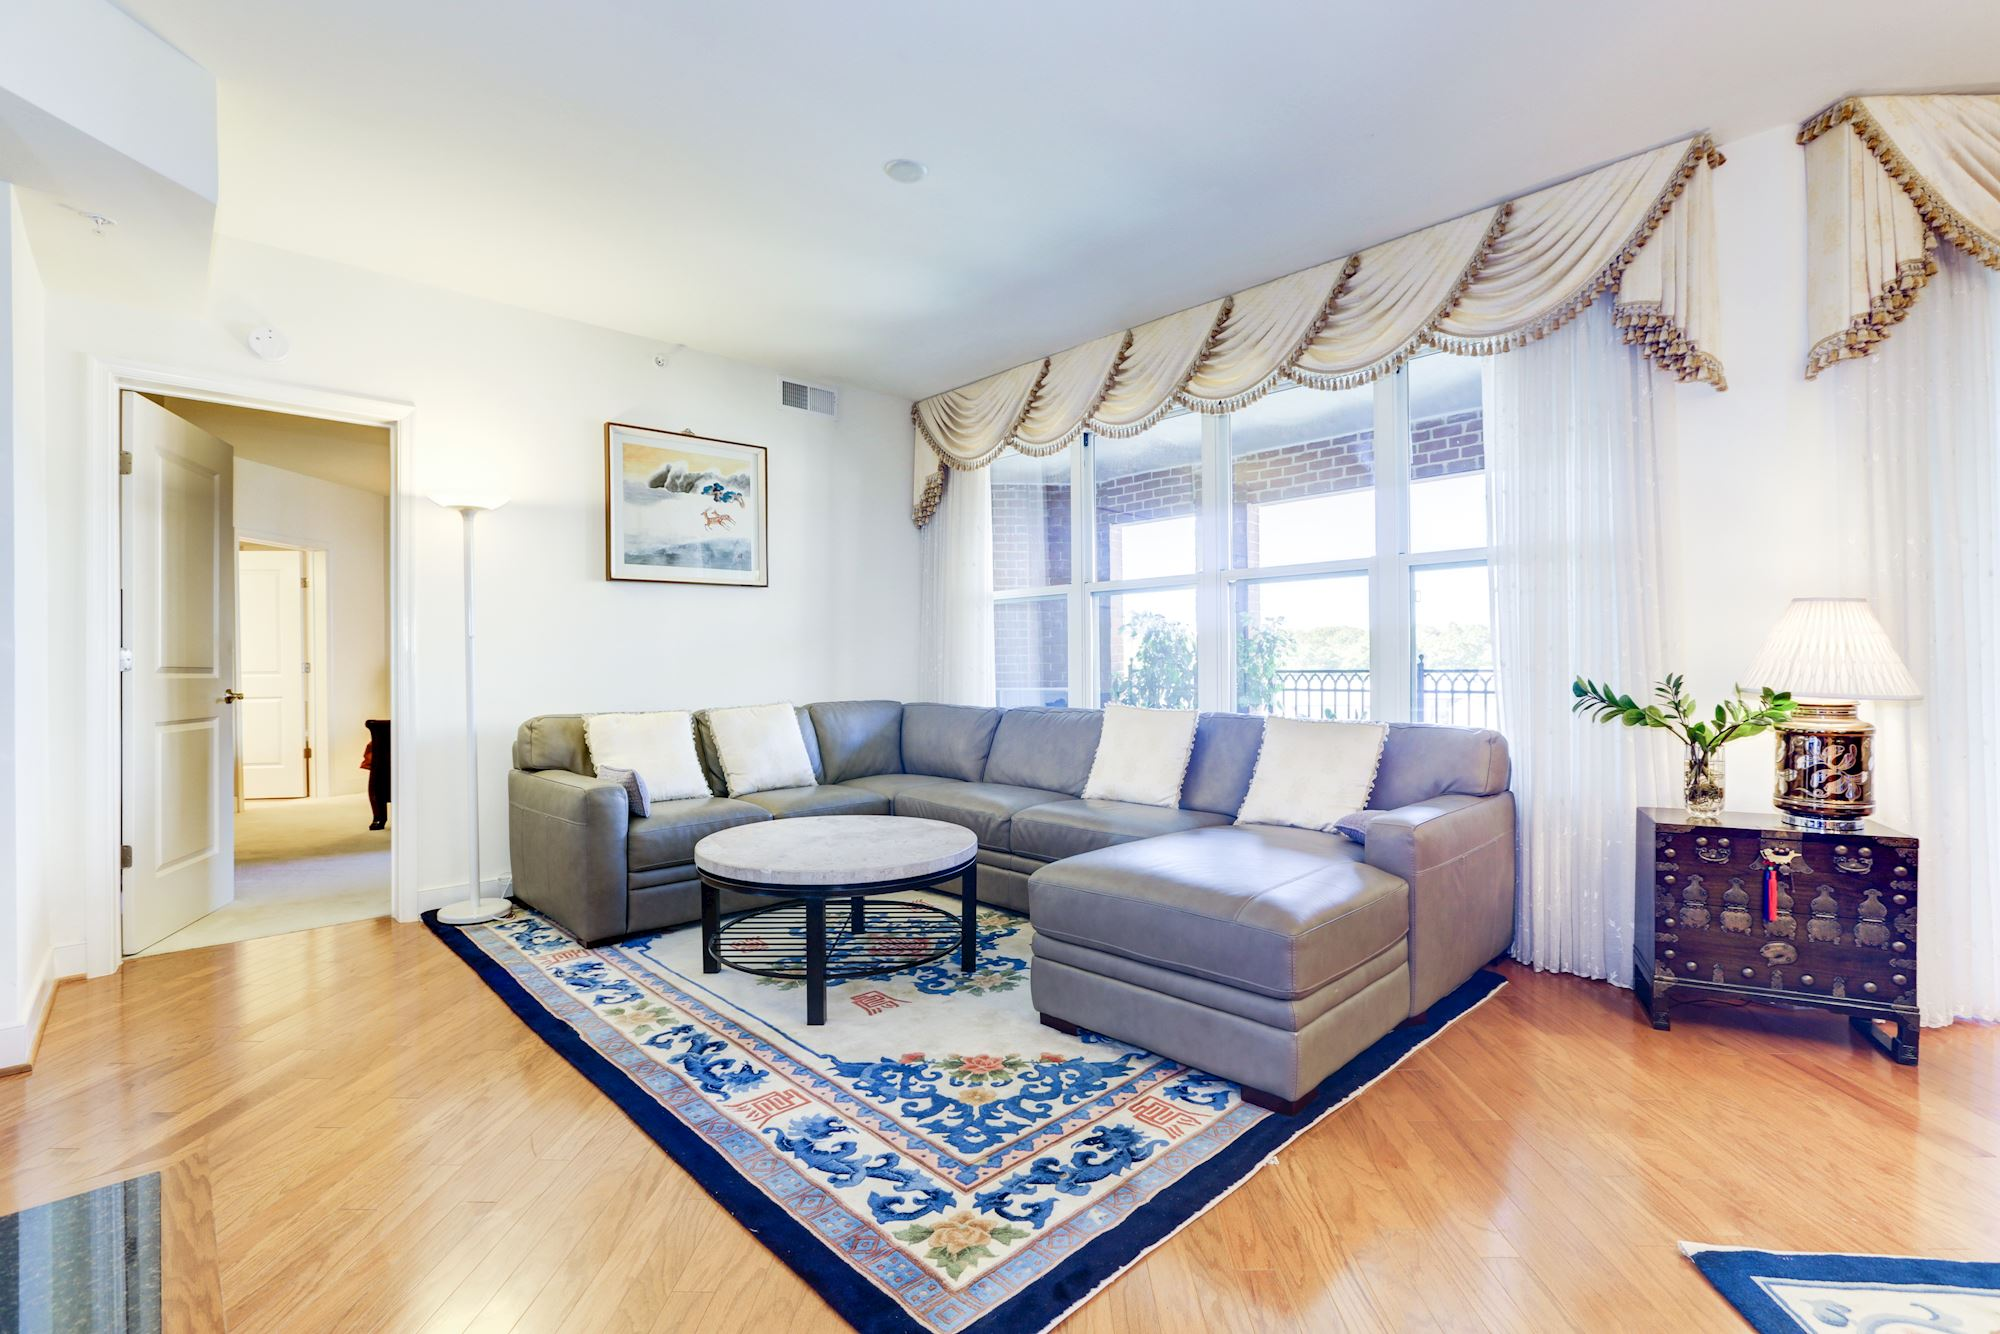 NEW LISTING: Beautifully Maintained 2BR/2BA Unit in Potomac, MD